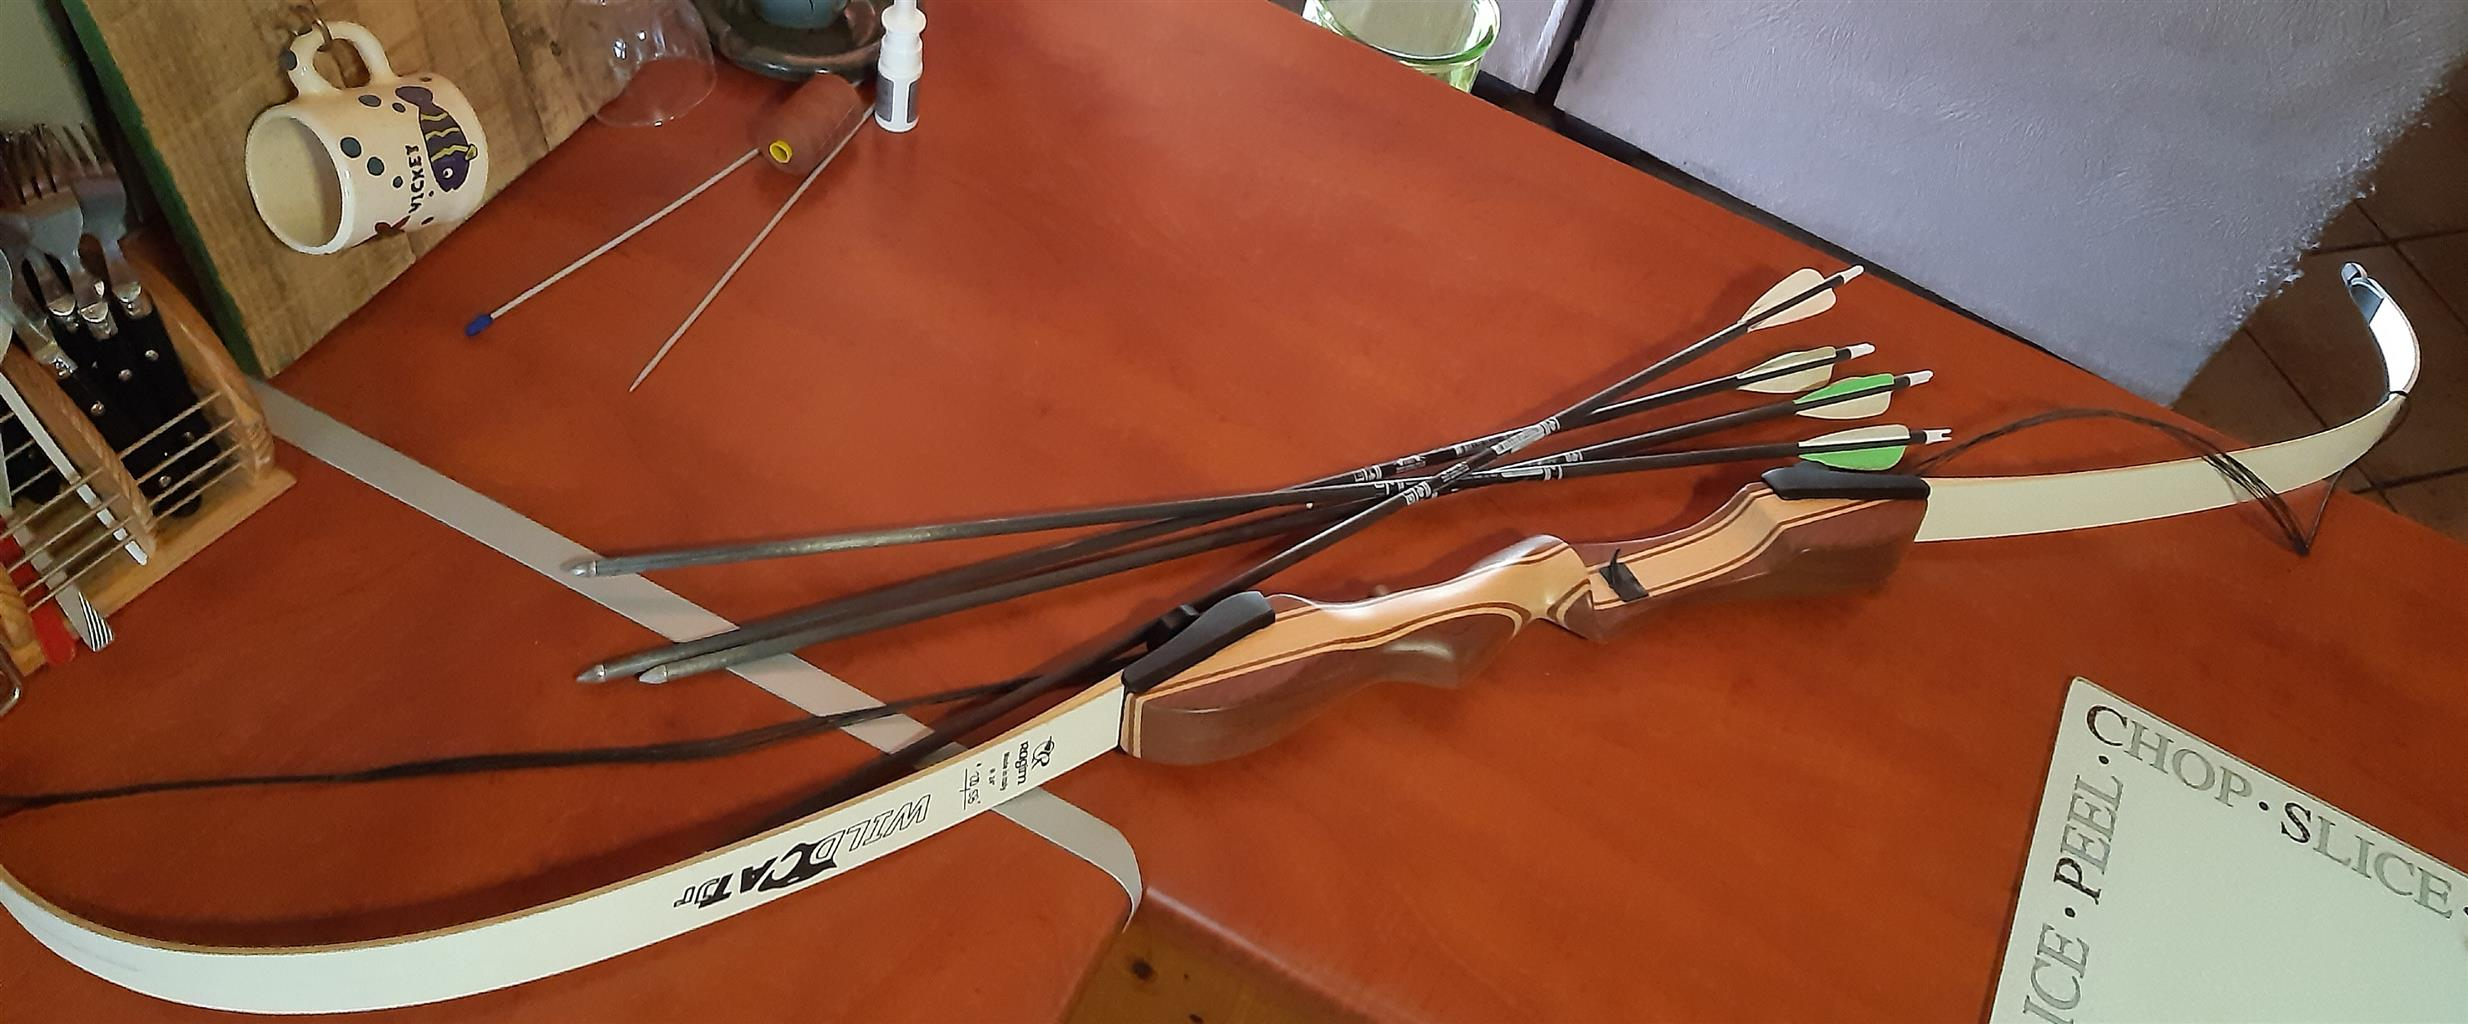 Wildcat recurve bow with accessories